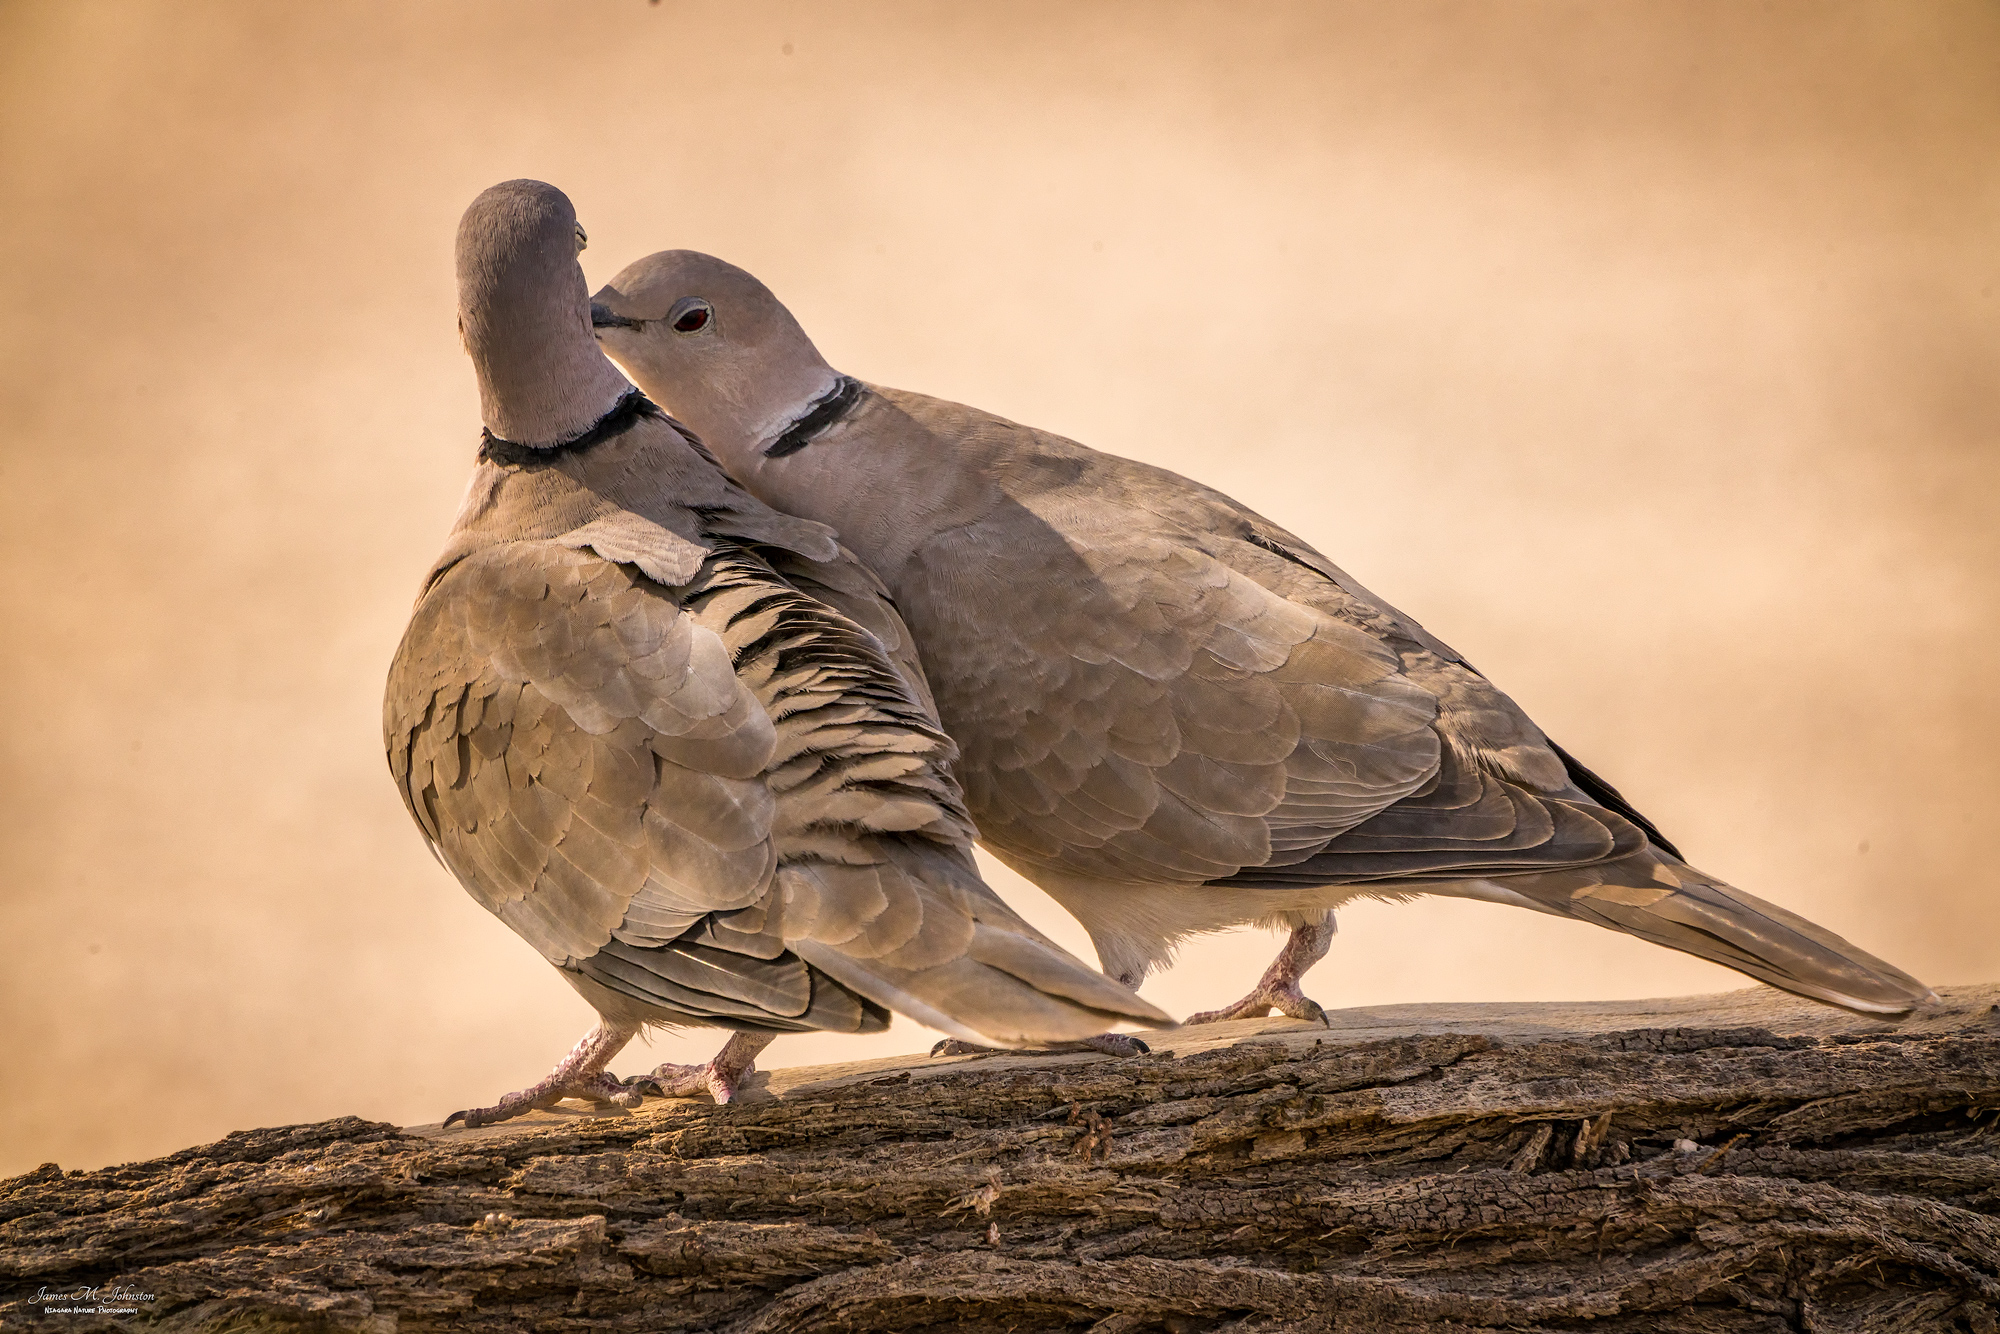 Two Cuddly Doves